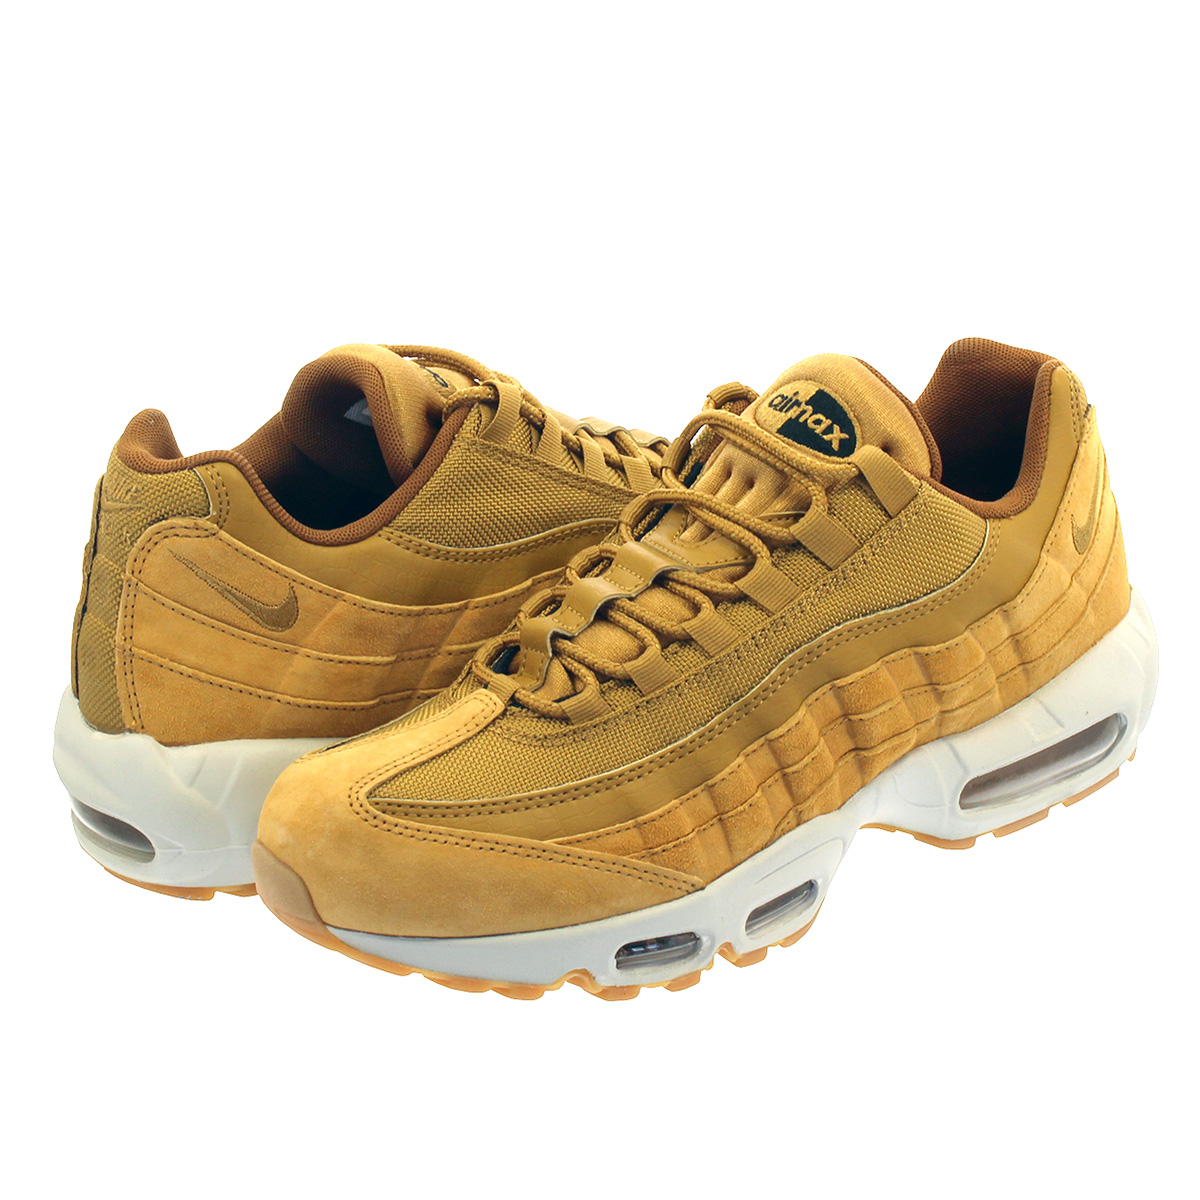 LOWTEX BIG-SMALL SHOP  NIKE AIR MAX 95 SE Kie Ney AMAX 95 SE WHEAT ... 79ec15002